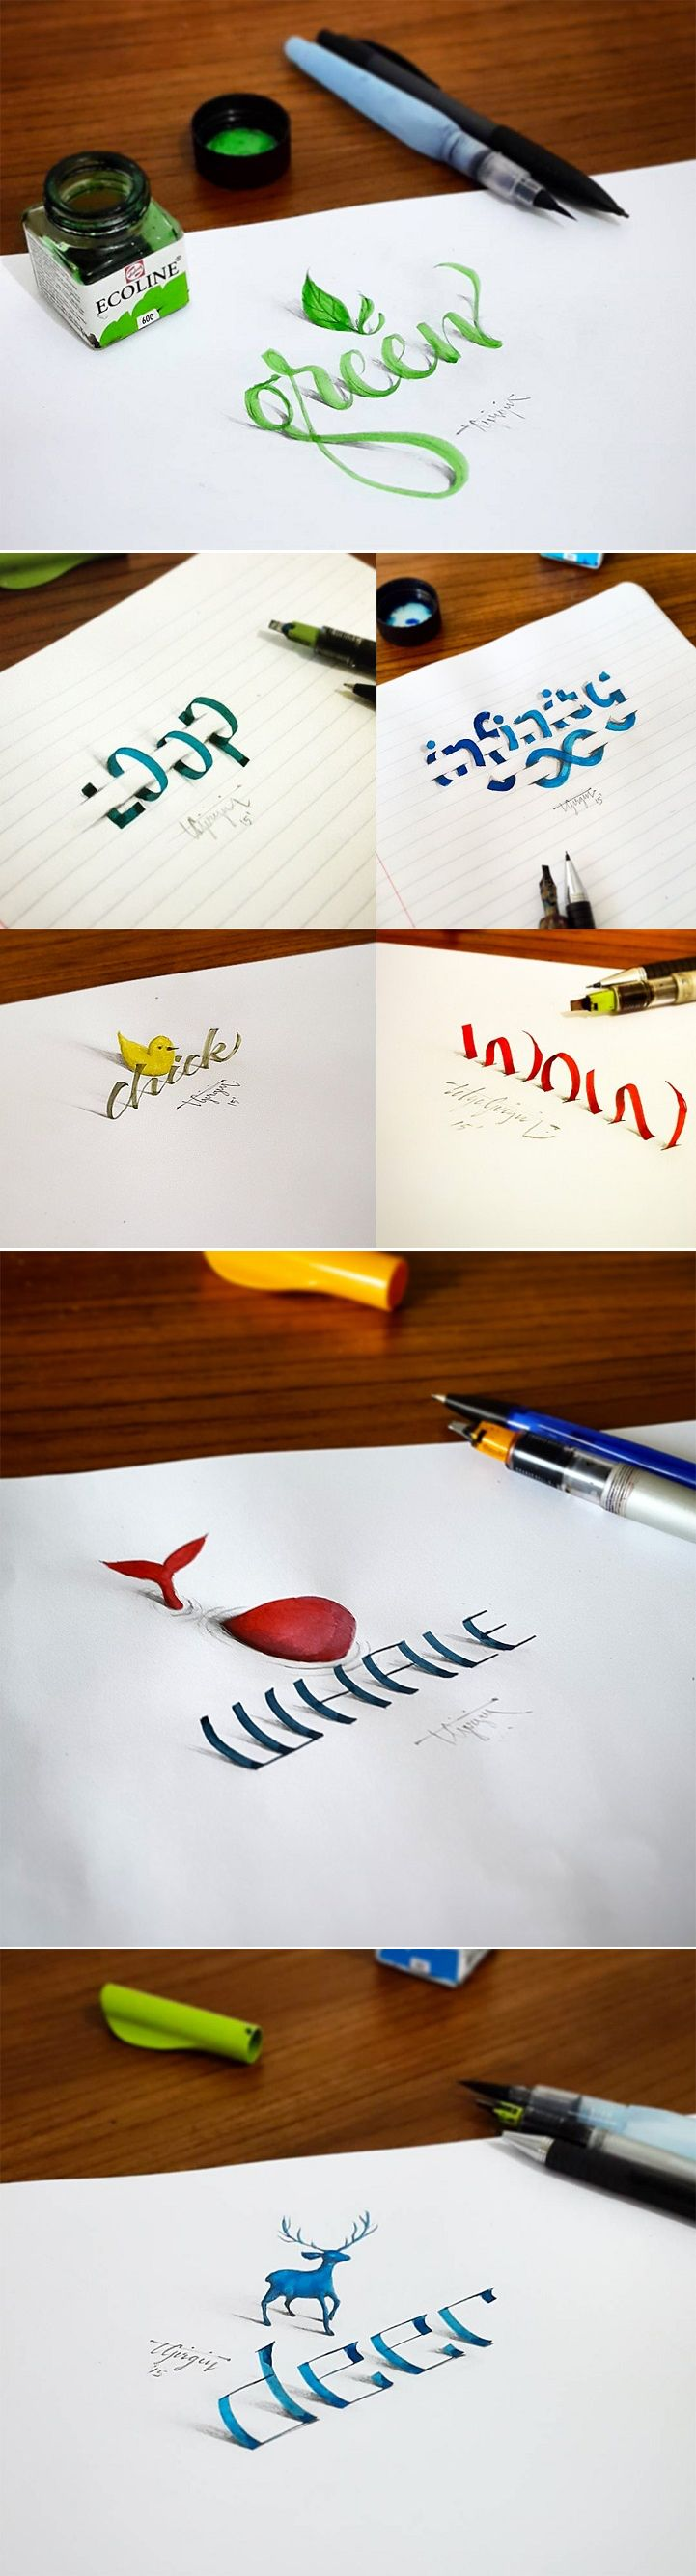 Best D Drawings Ideas On Pinterest D Calligraphy Funny - Artist creates amazing 3d sketches that leap from the paper theyre drawn on